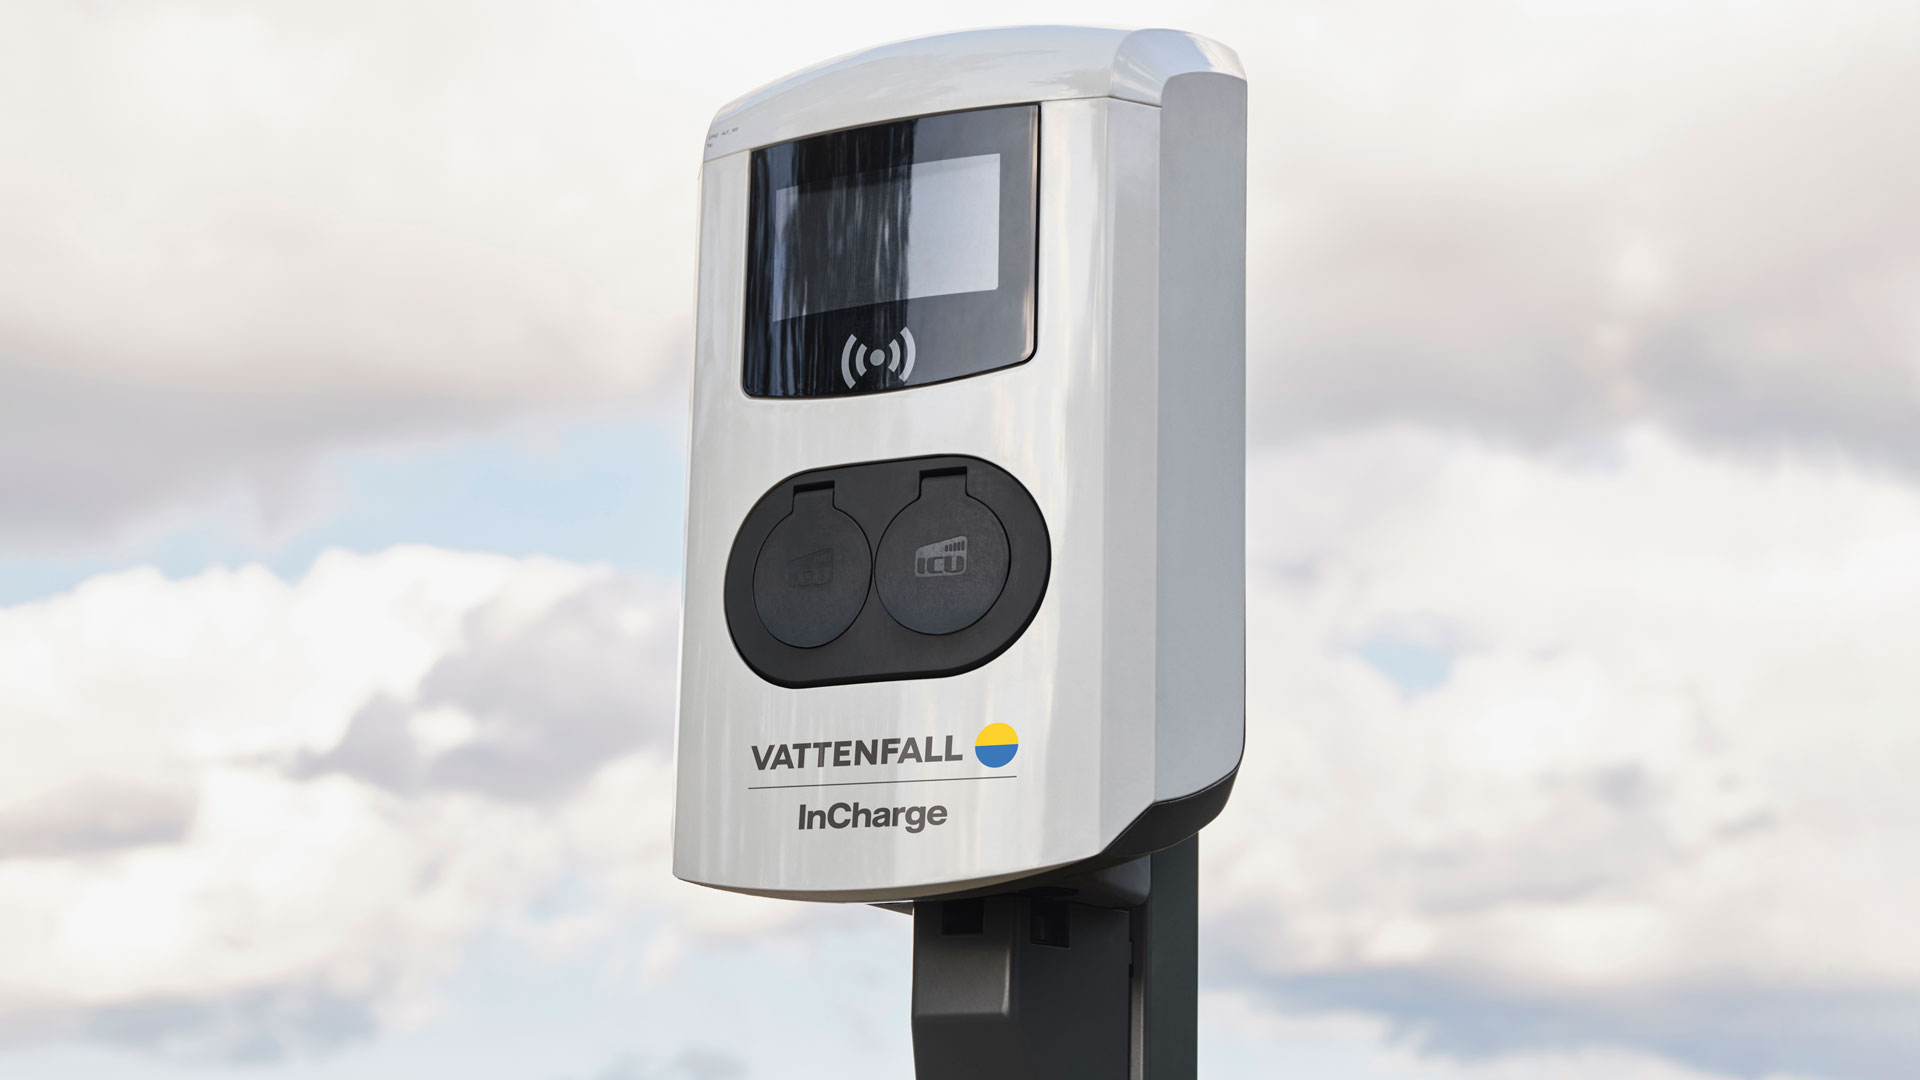 Vattenfall_InCharge_Charger_NL_cropped-(002)-1920.jpg